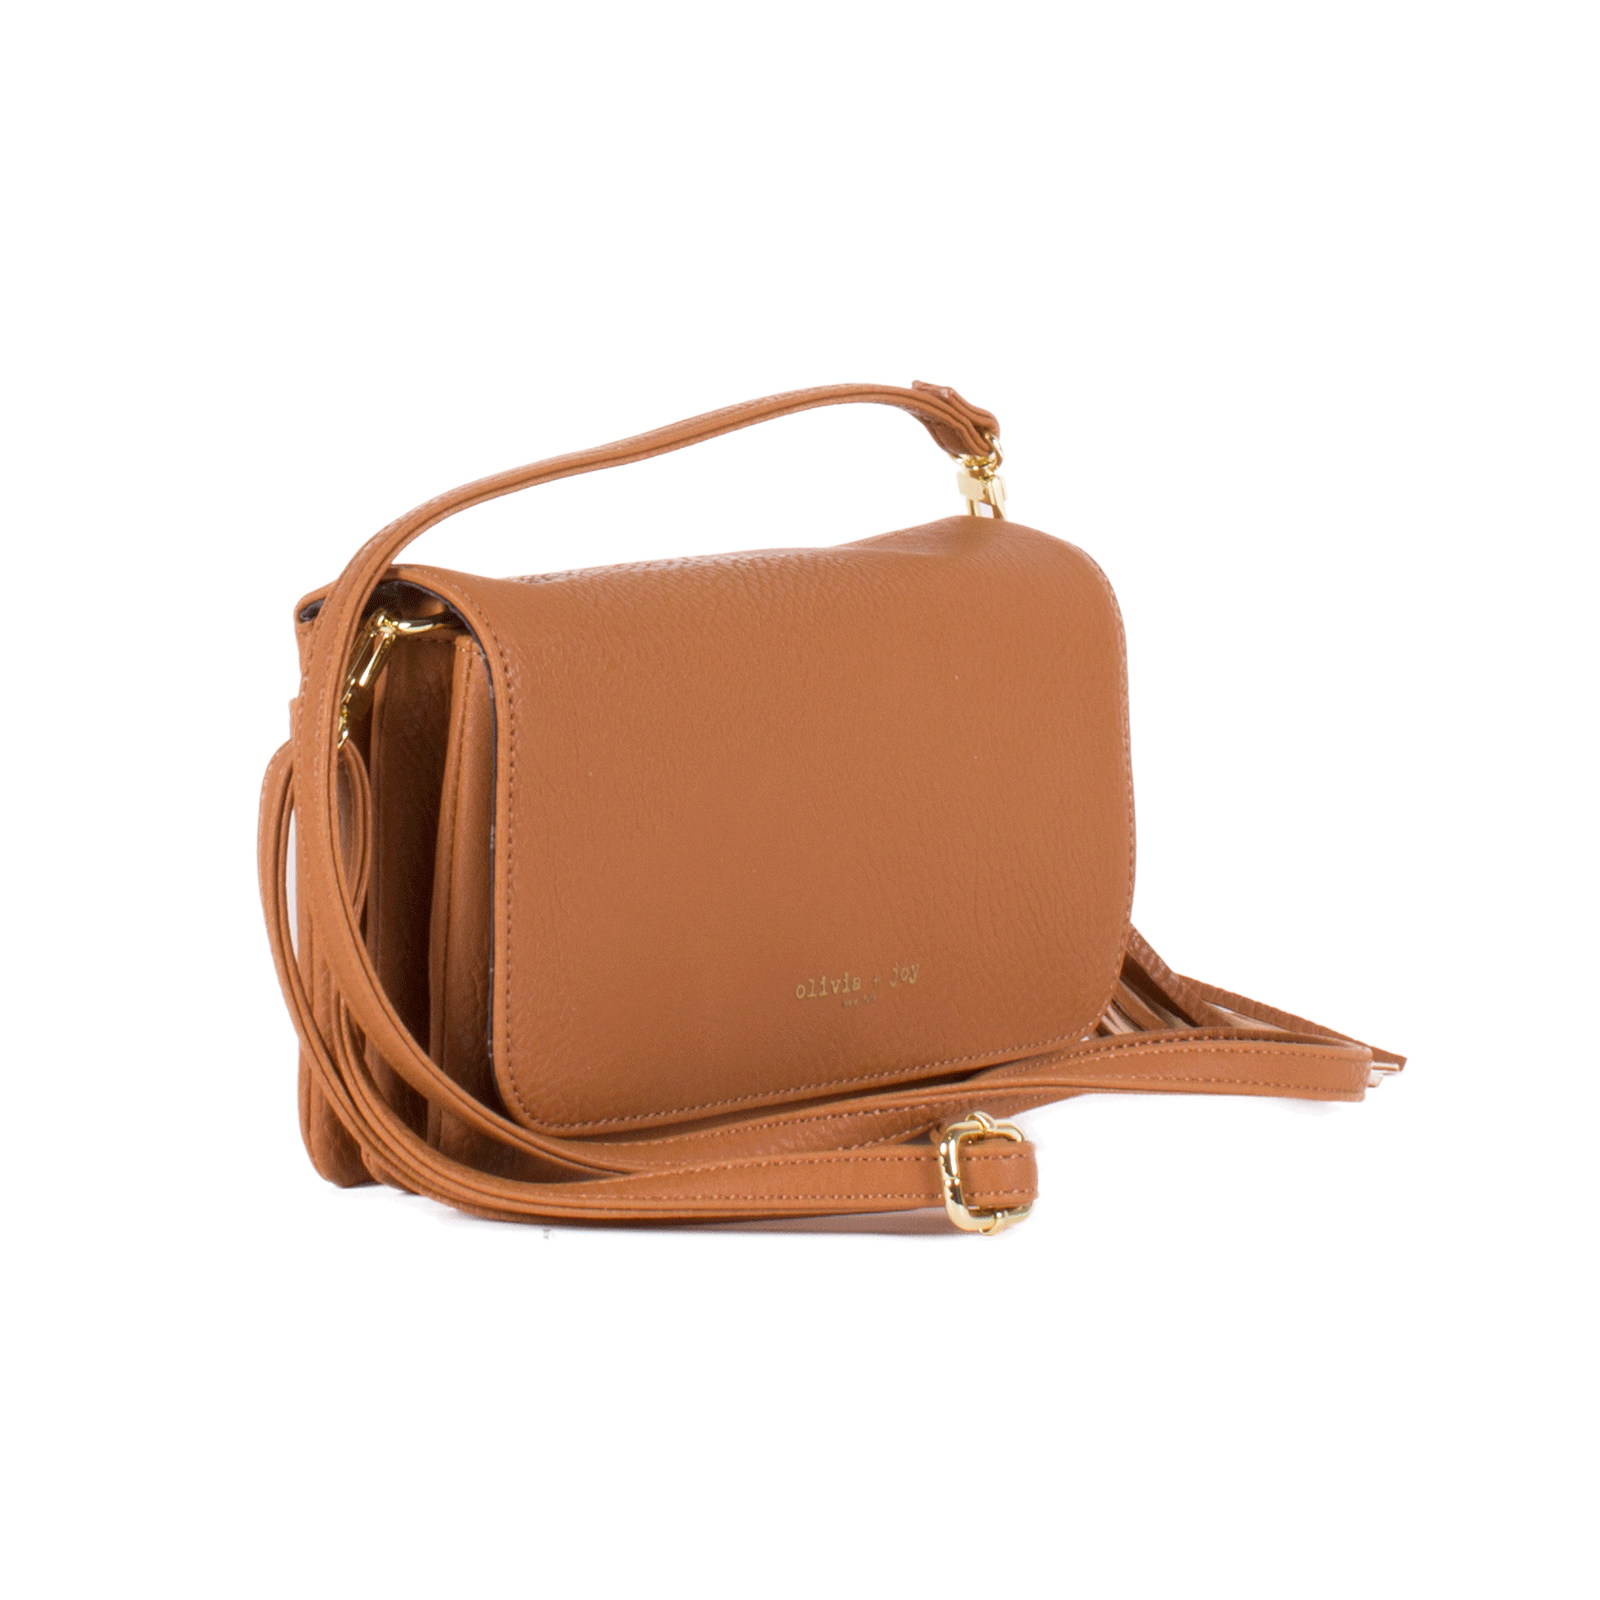 Lilian Flap Crossbody with Pom Pom